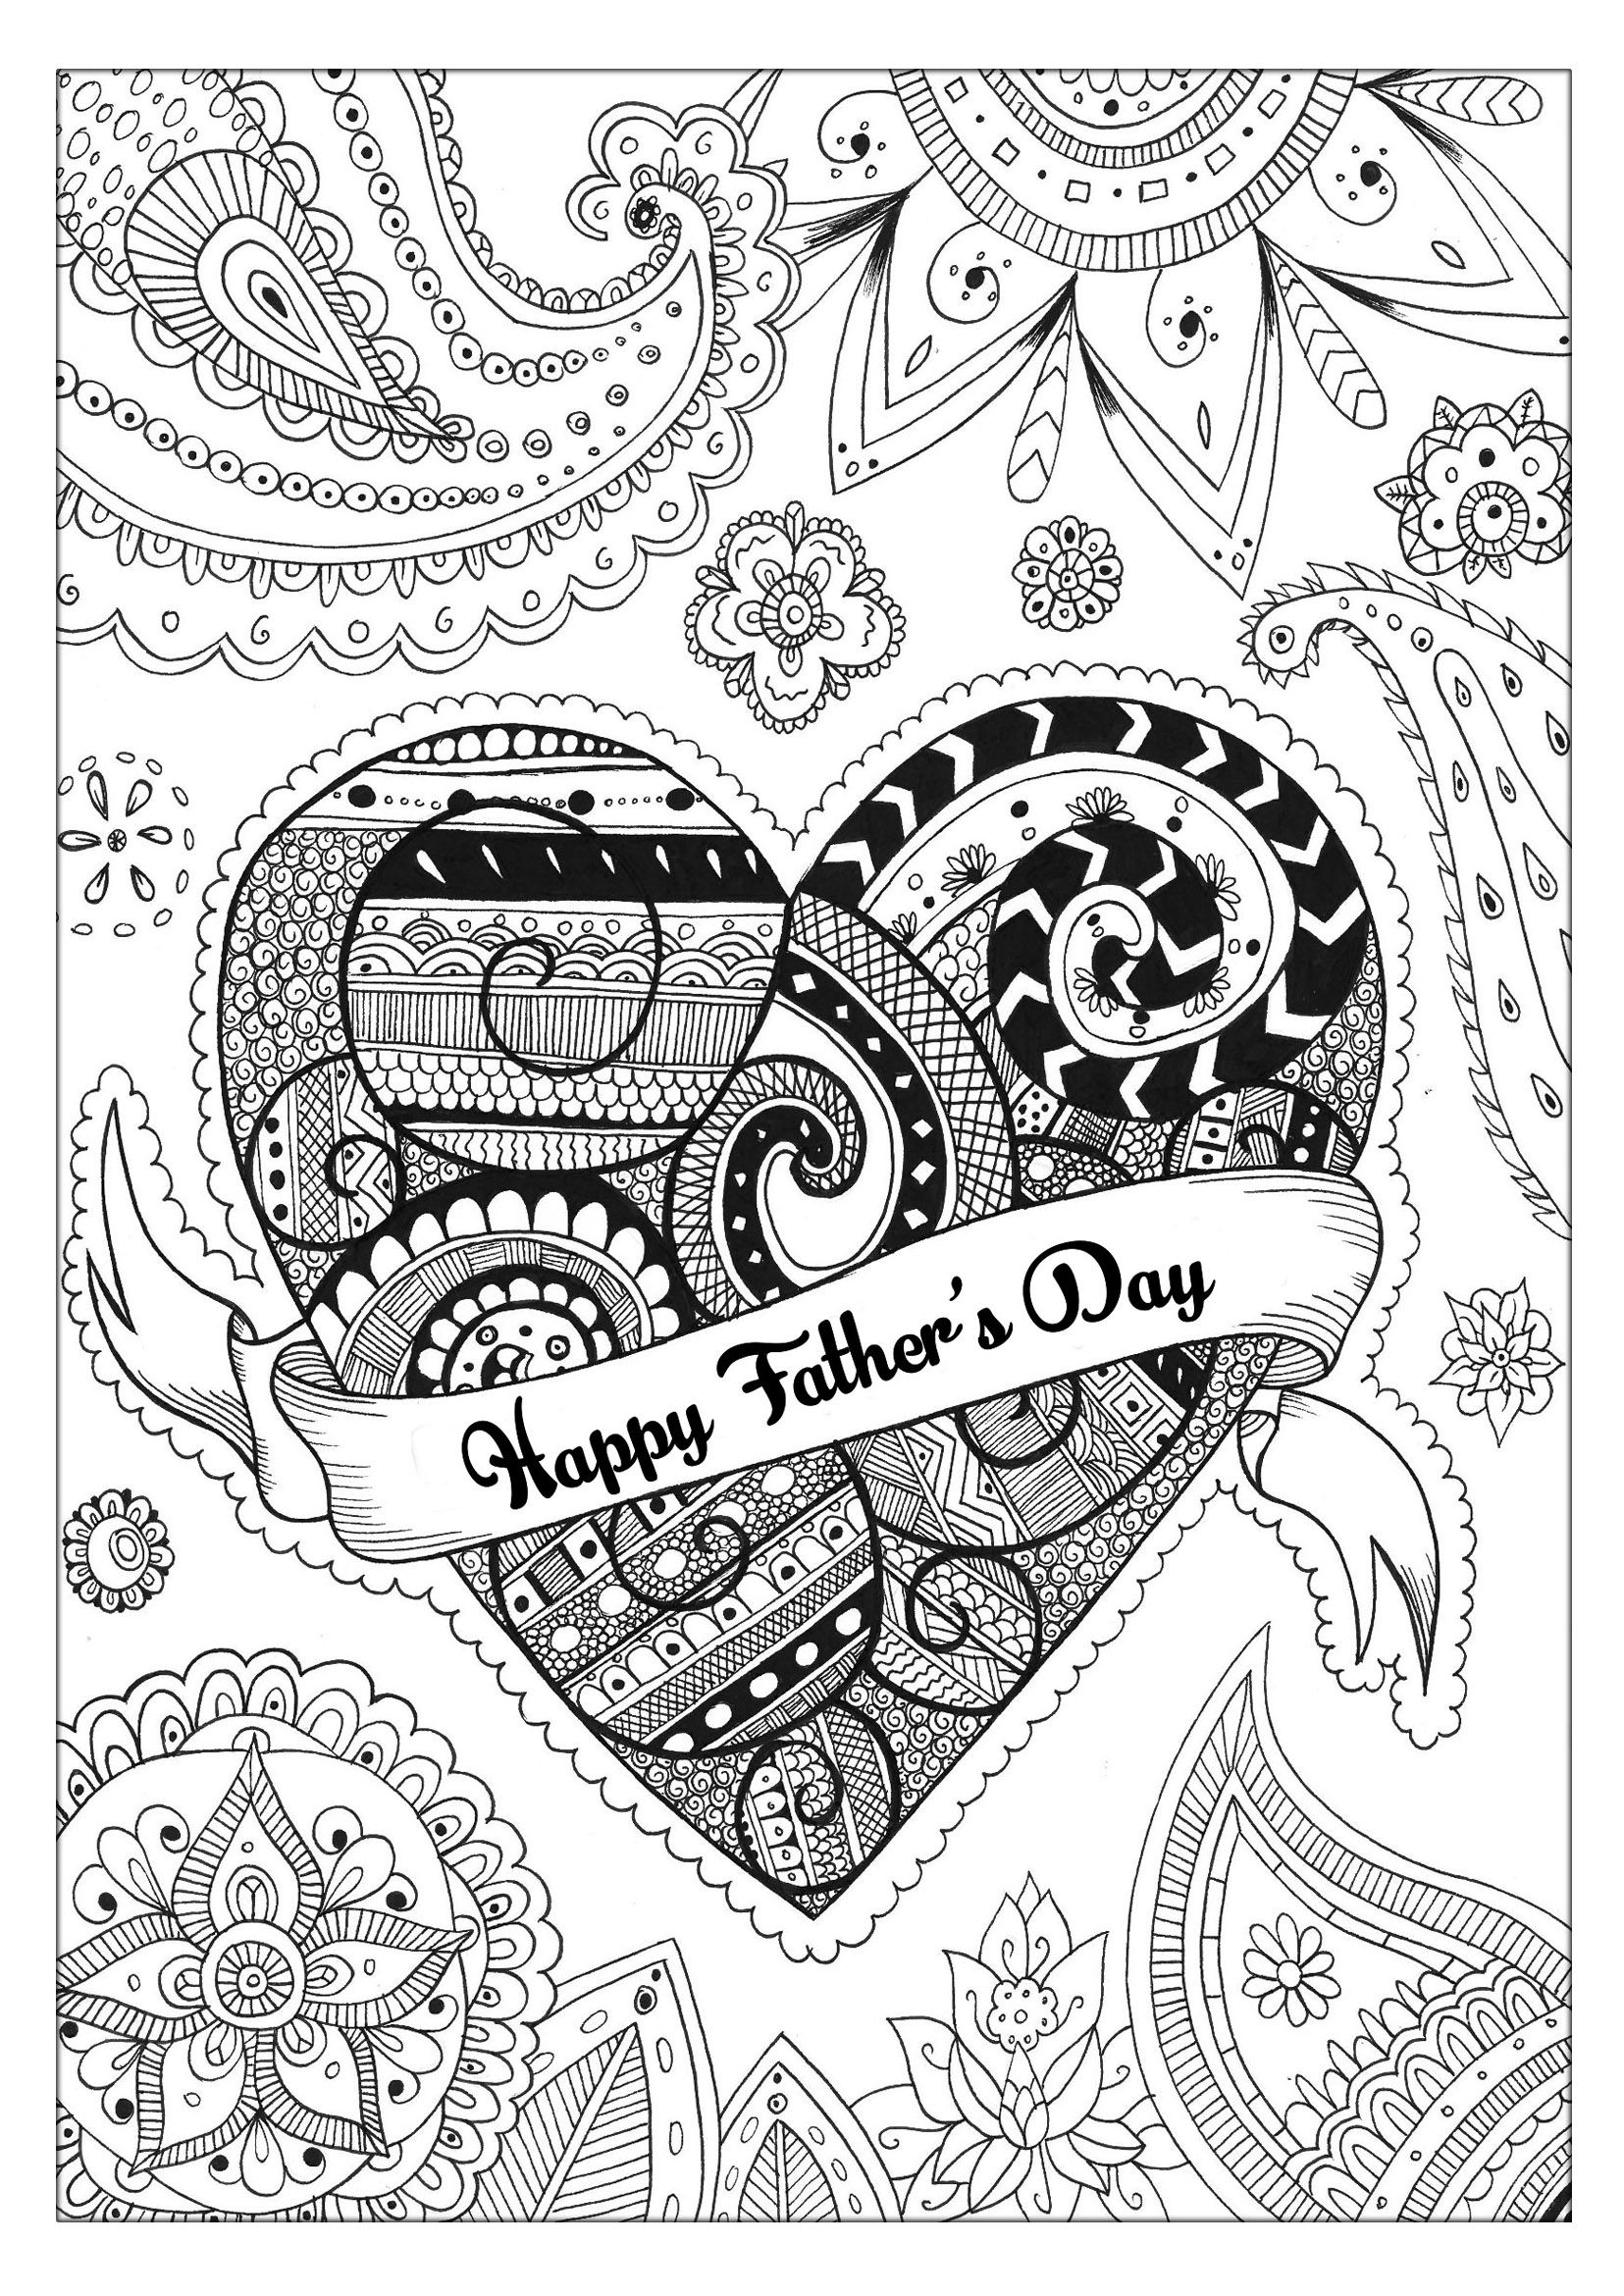 Here Is A Special Coloring Page Of Rachel For The Fathers Day She Has Good Zentangle Style From Gallery Events